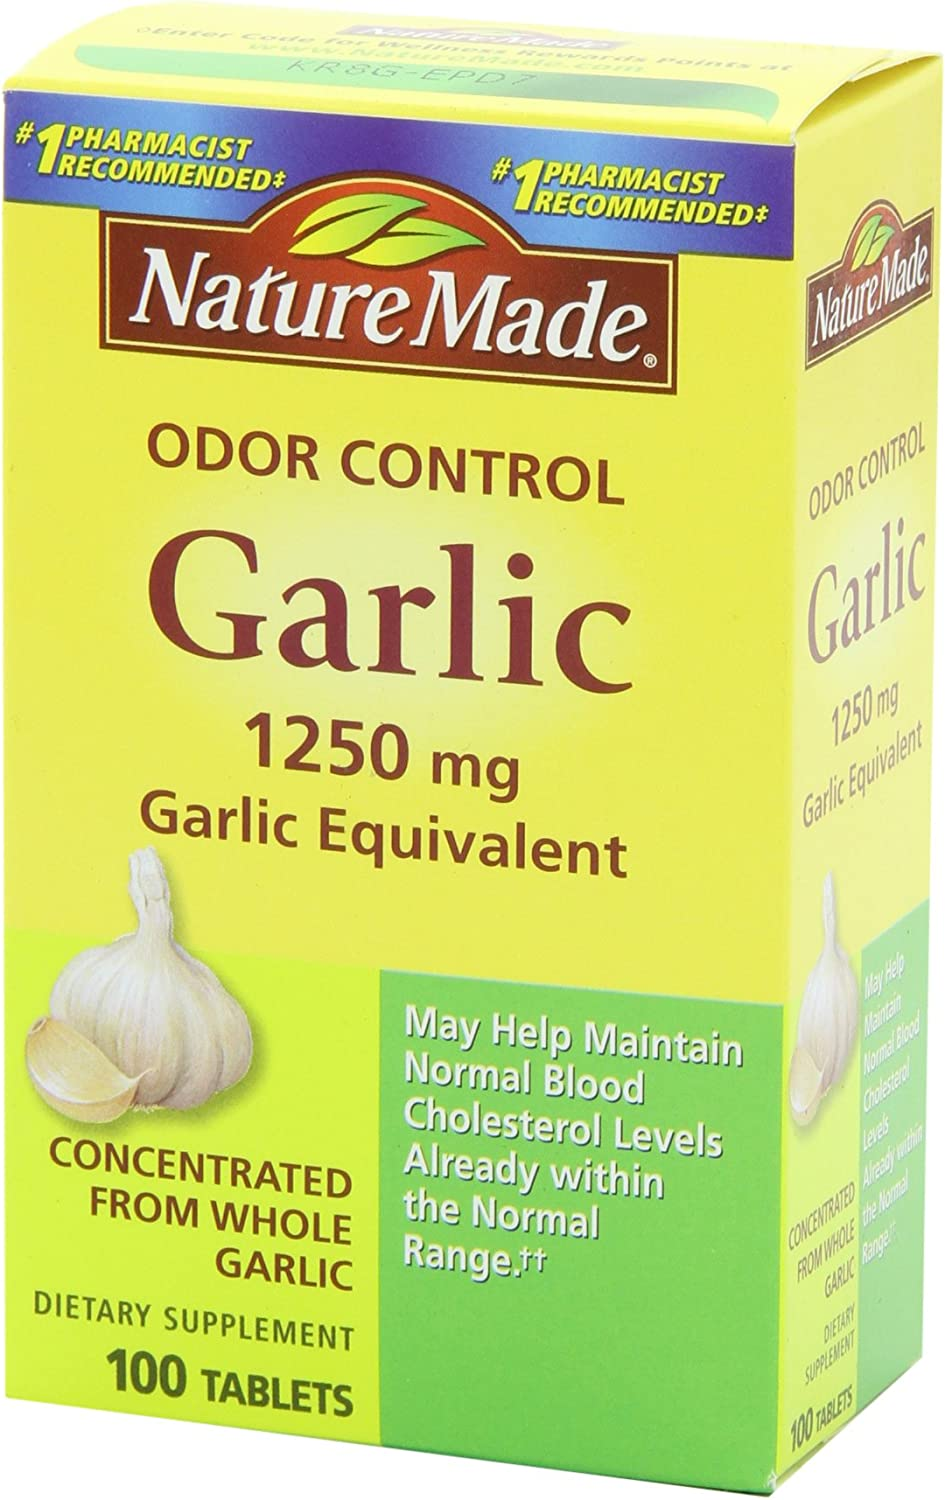 Nature Made Odor Control Garlic, 1250mg, 100 Tabs: Health & Personal Care